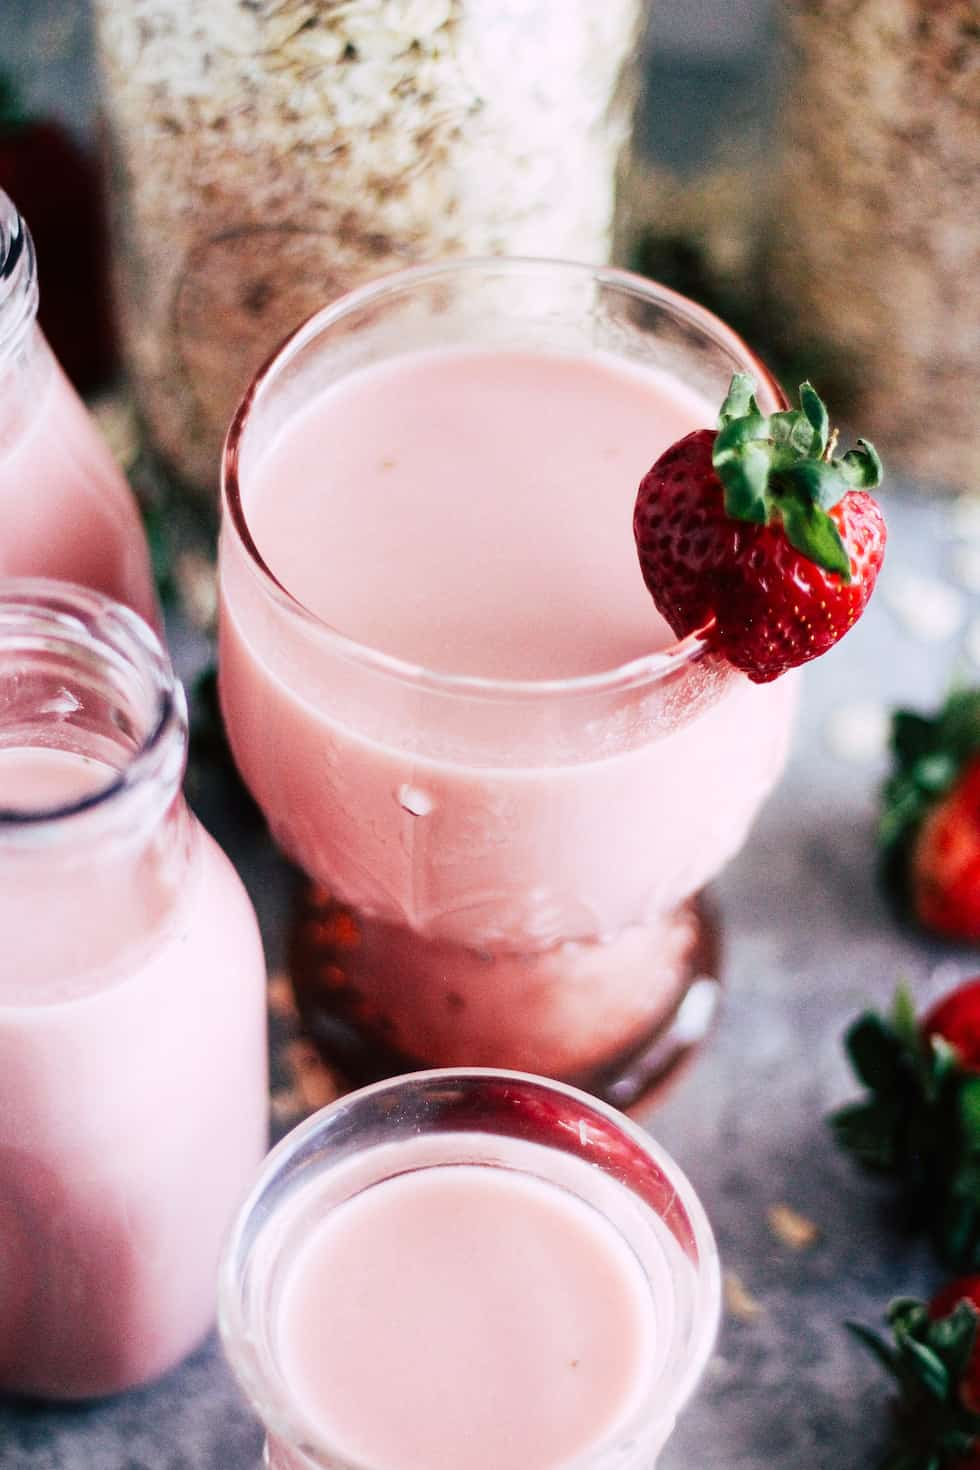 Pink glass filled with strawberry oat milk with a strawberry garnish. Jars of oats and milk jars in background.